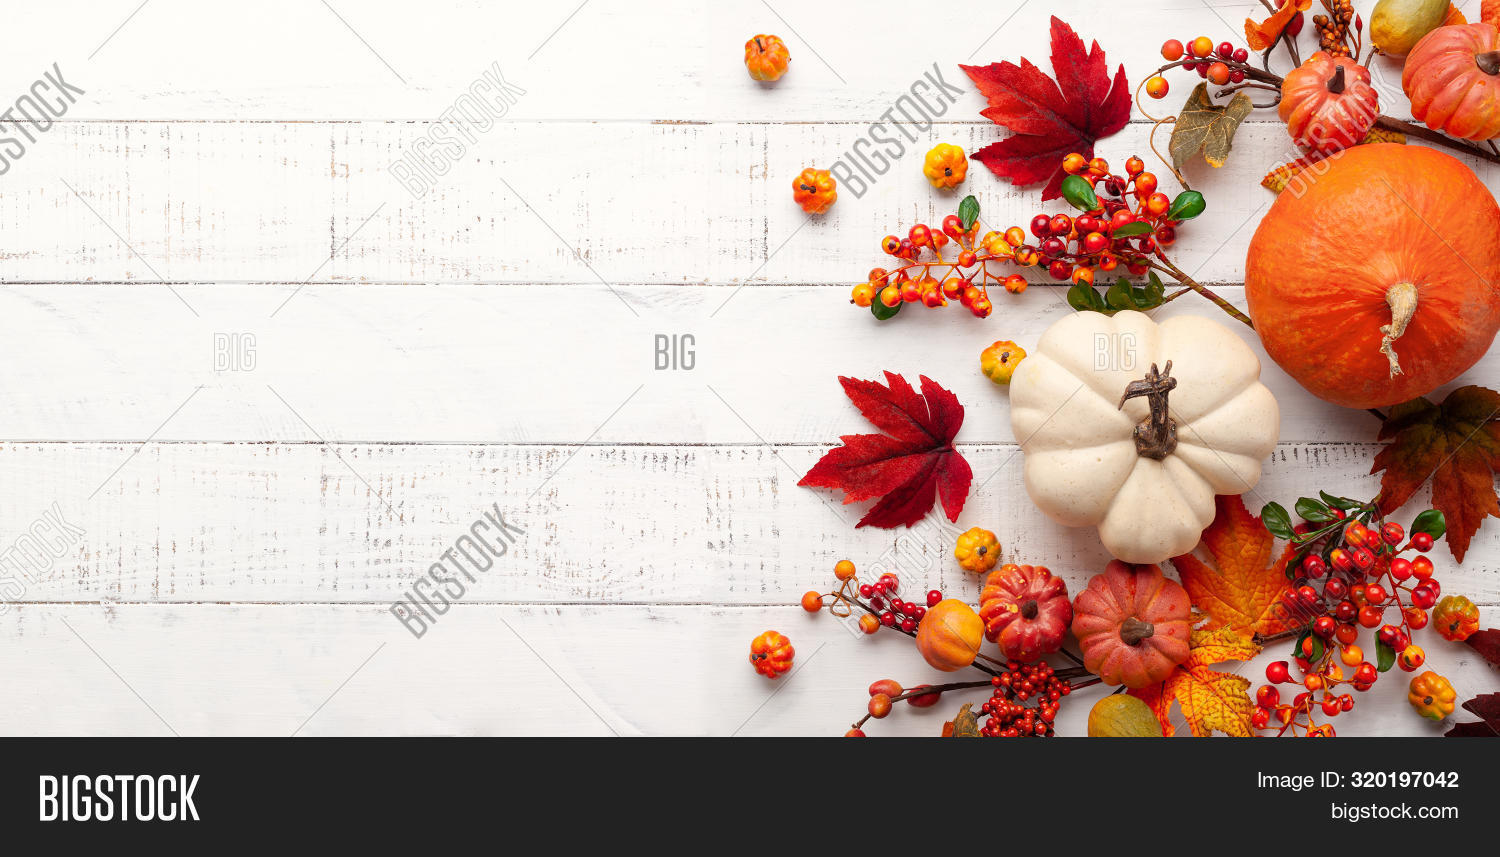 acorn,autumn,autumn leaves,background,beautiful,berry,celebration,composition,concept,day,decor,decoration,design,fall,festive,flat lay,foliage,food,forest,garden,halloween,harvest,holiday,leaf,maple,nature,november,october,orange,plant,pumpkin,red,rustic,scene,season,sun,table,thanksgiving,top view,traditional,vegetable,white,wood,yellow